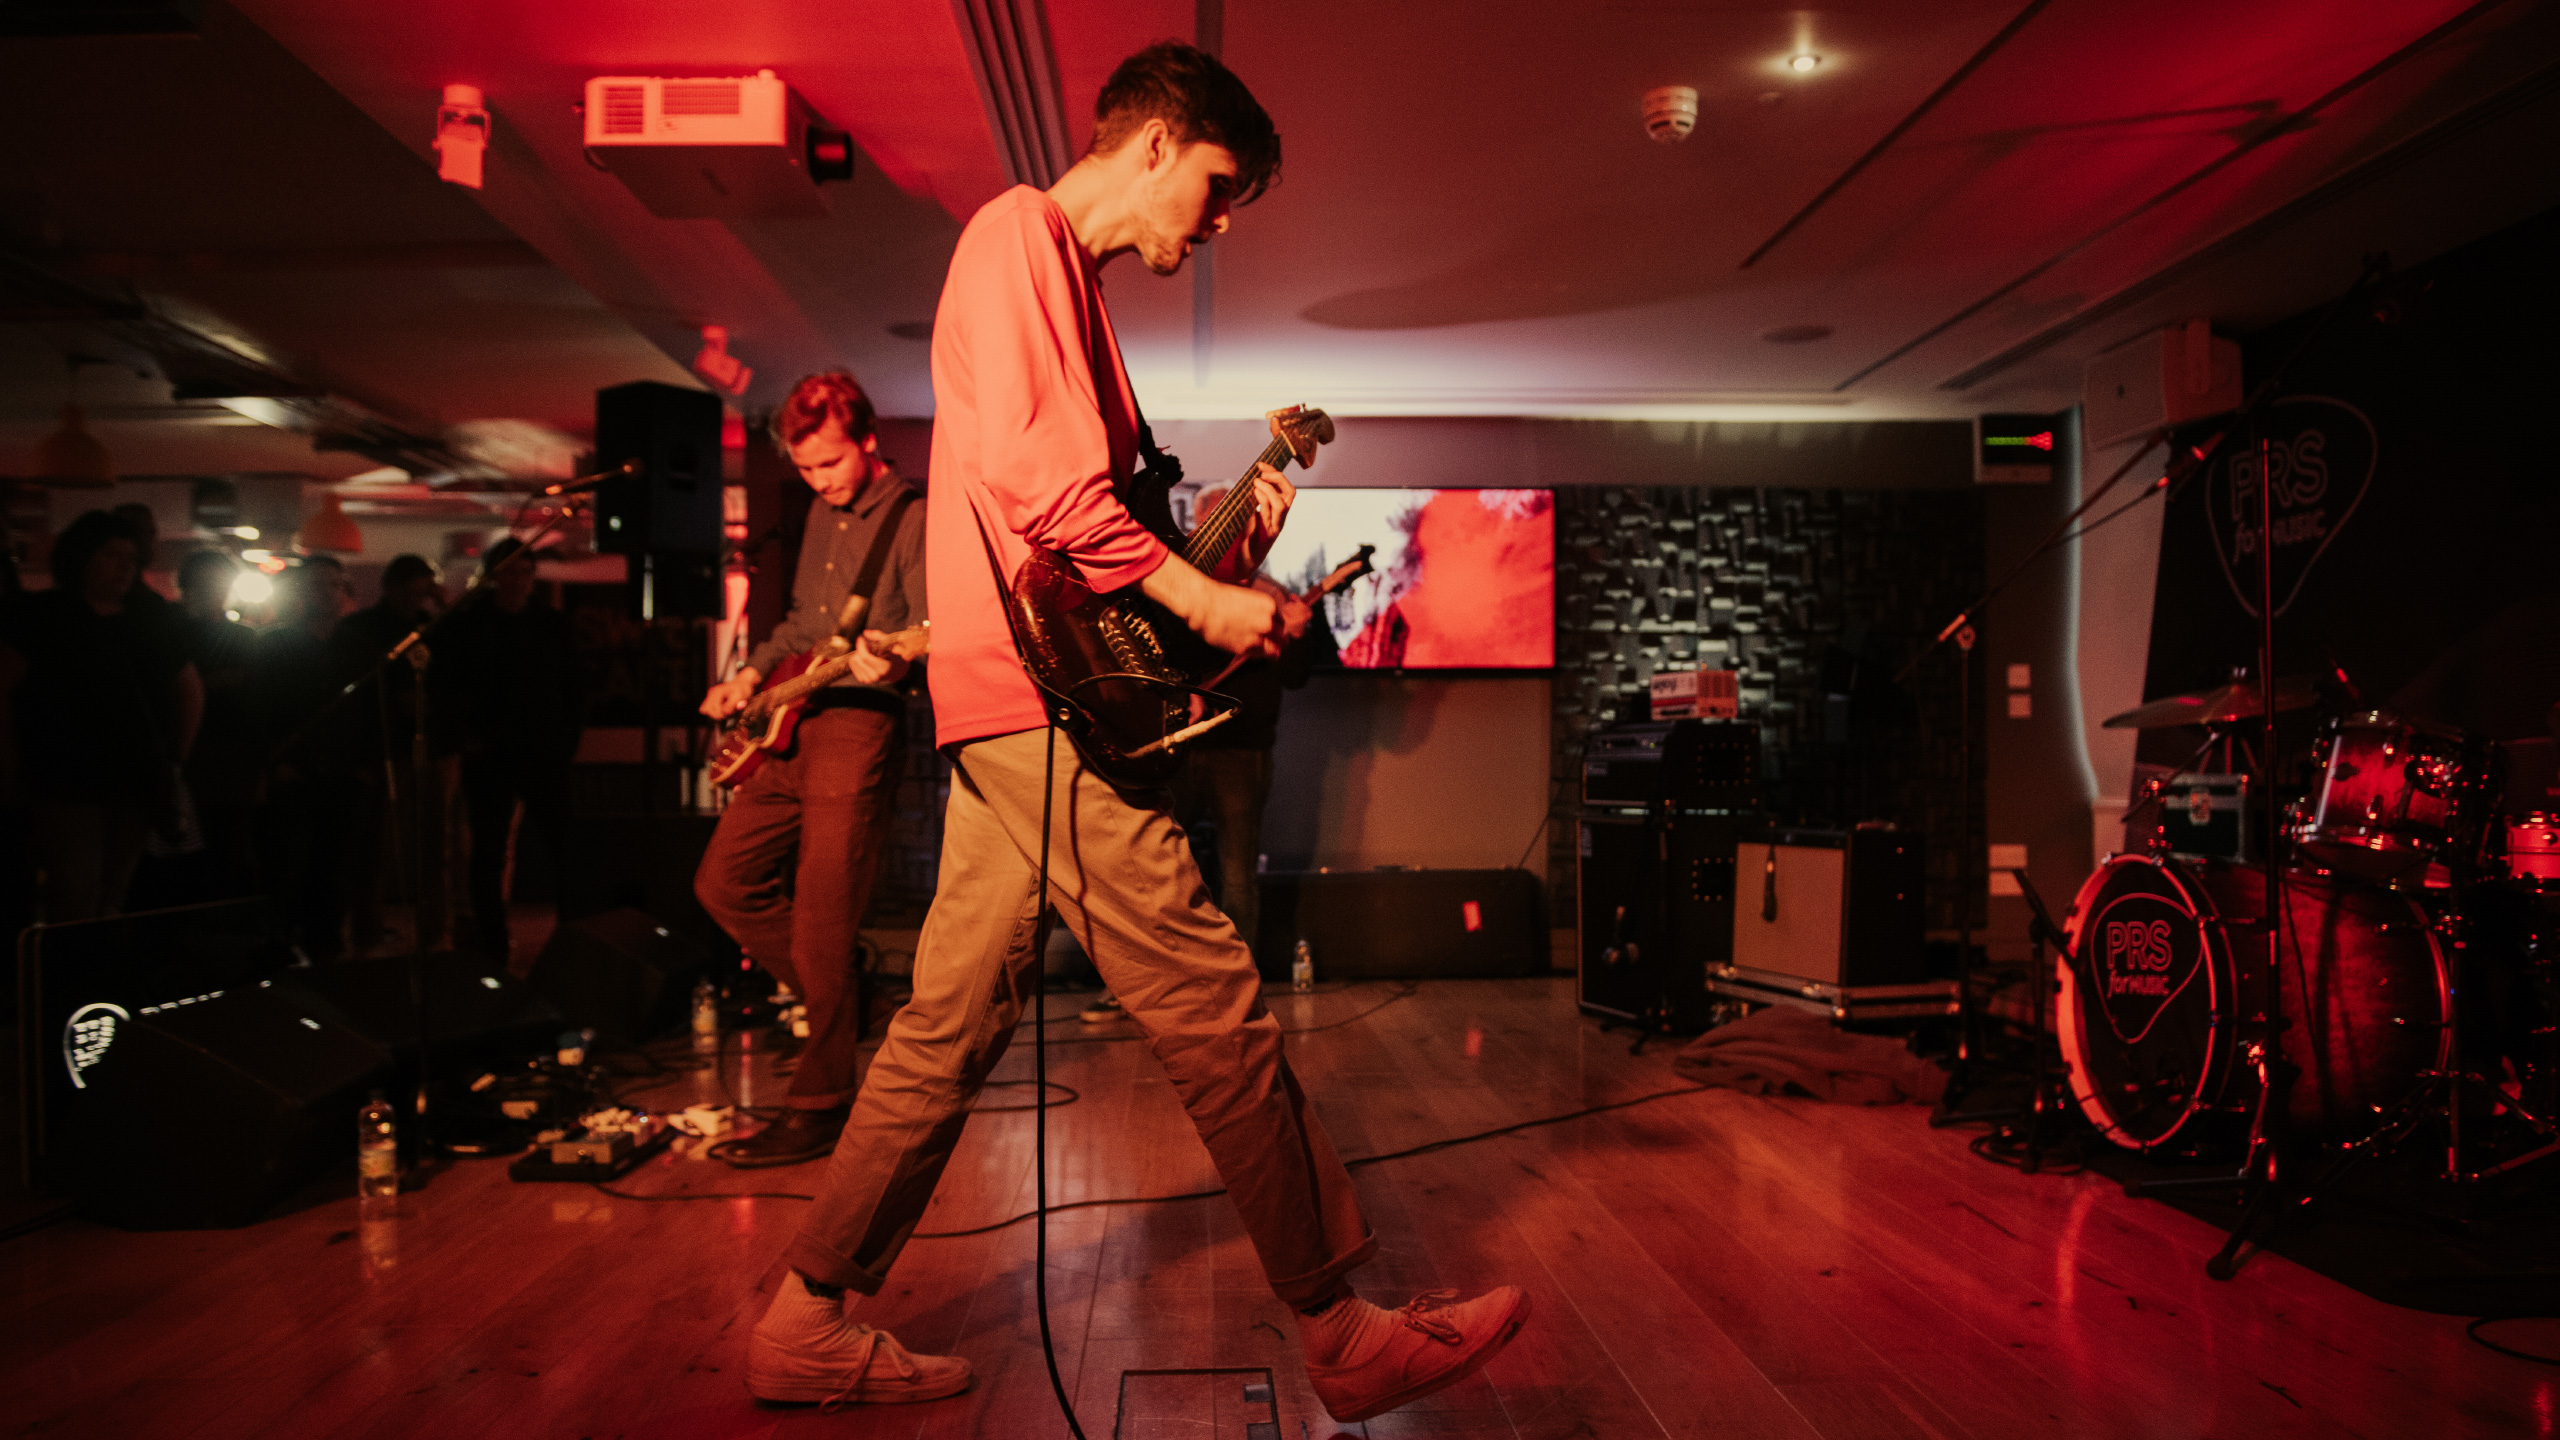 Black Midi on stage at the PRS Streatham office